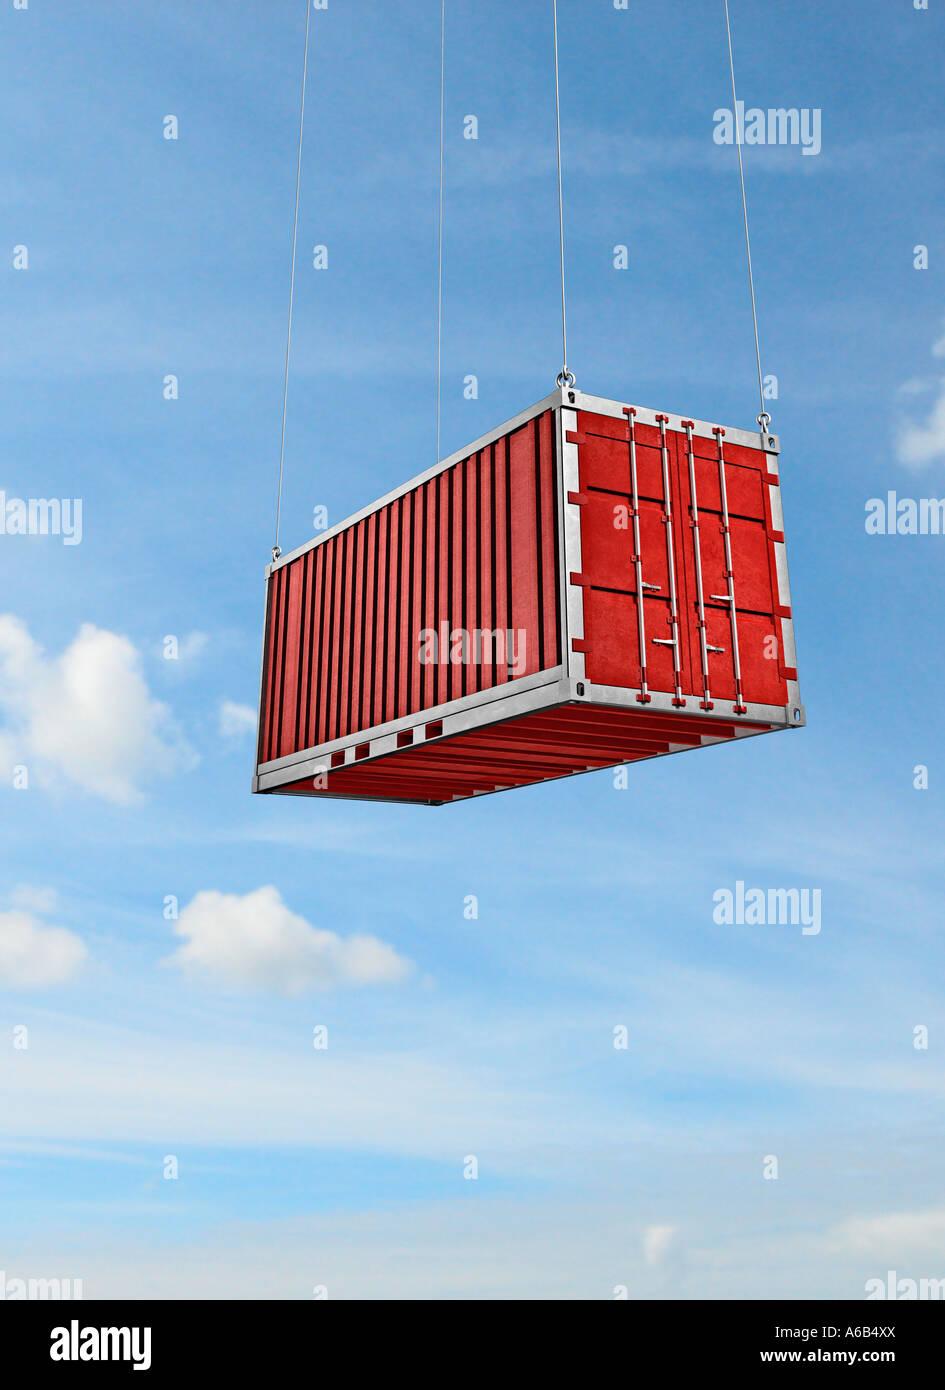 container symbol of economy export import cargo trade commerce logistics transportation sea see - Stock Image